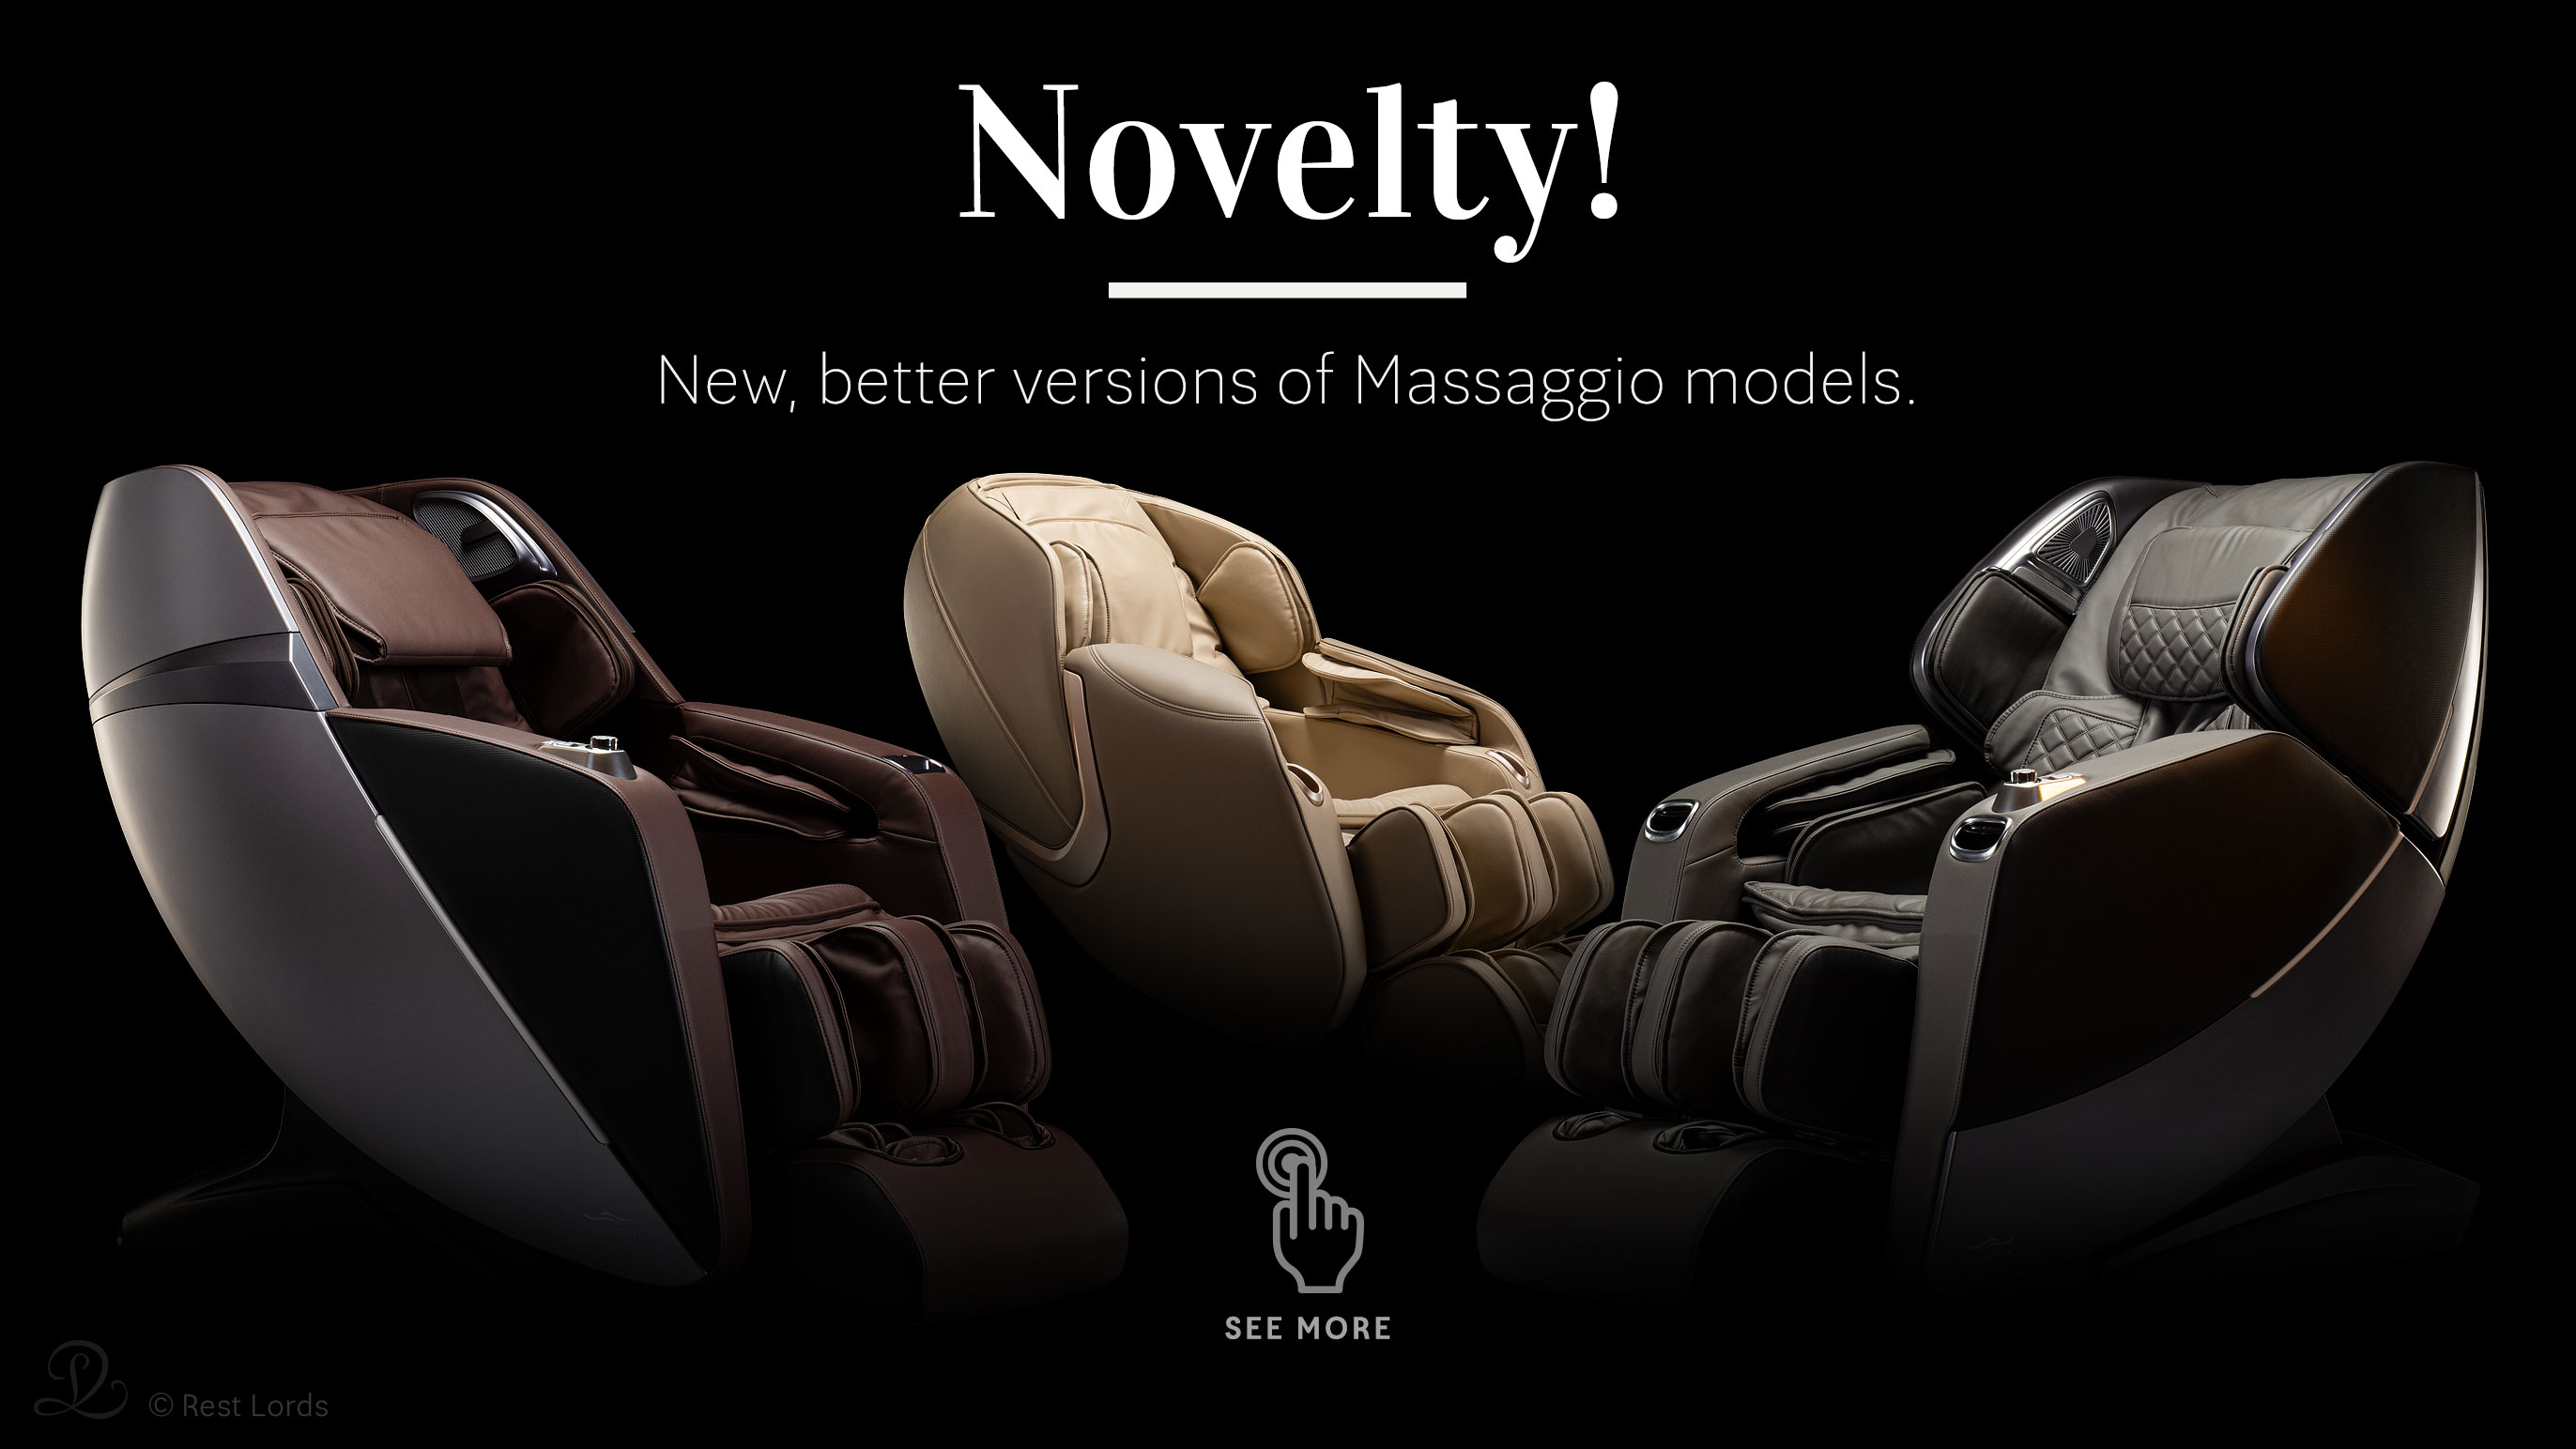 Novelty in Massaggio brand - new massage chairs